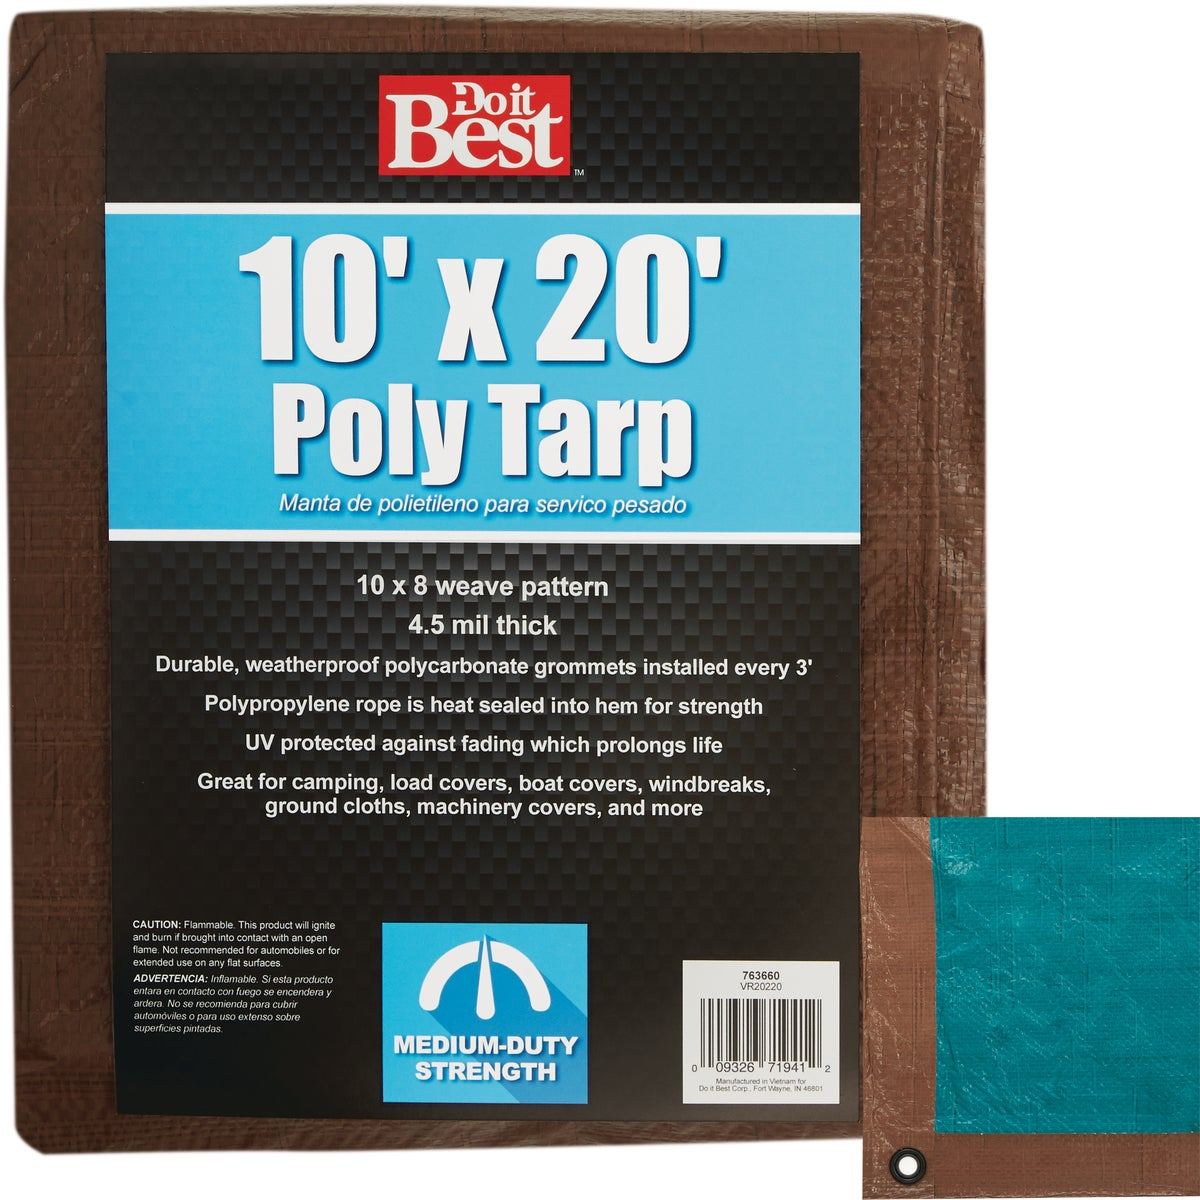 10X20 BR/GR M DUTY TARP - 763660 by Do it Best